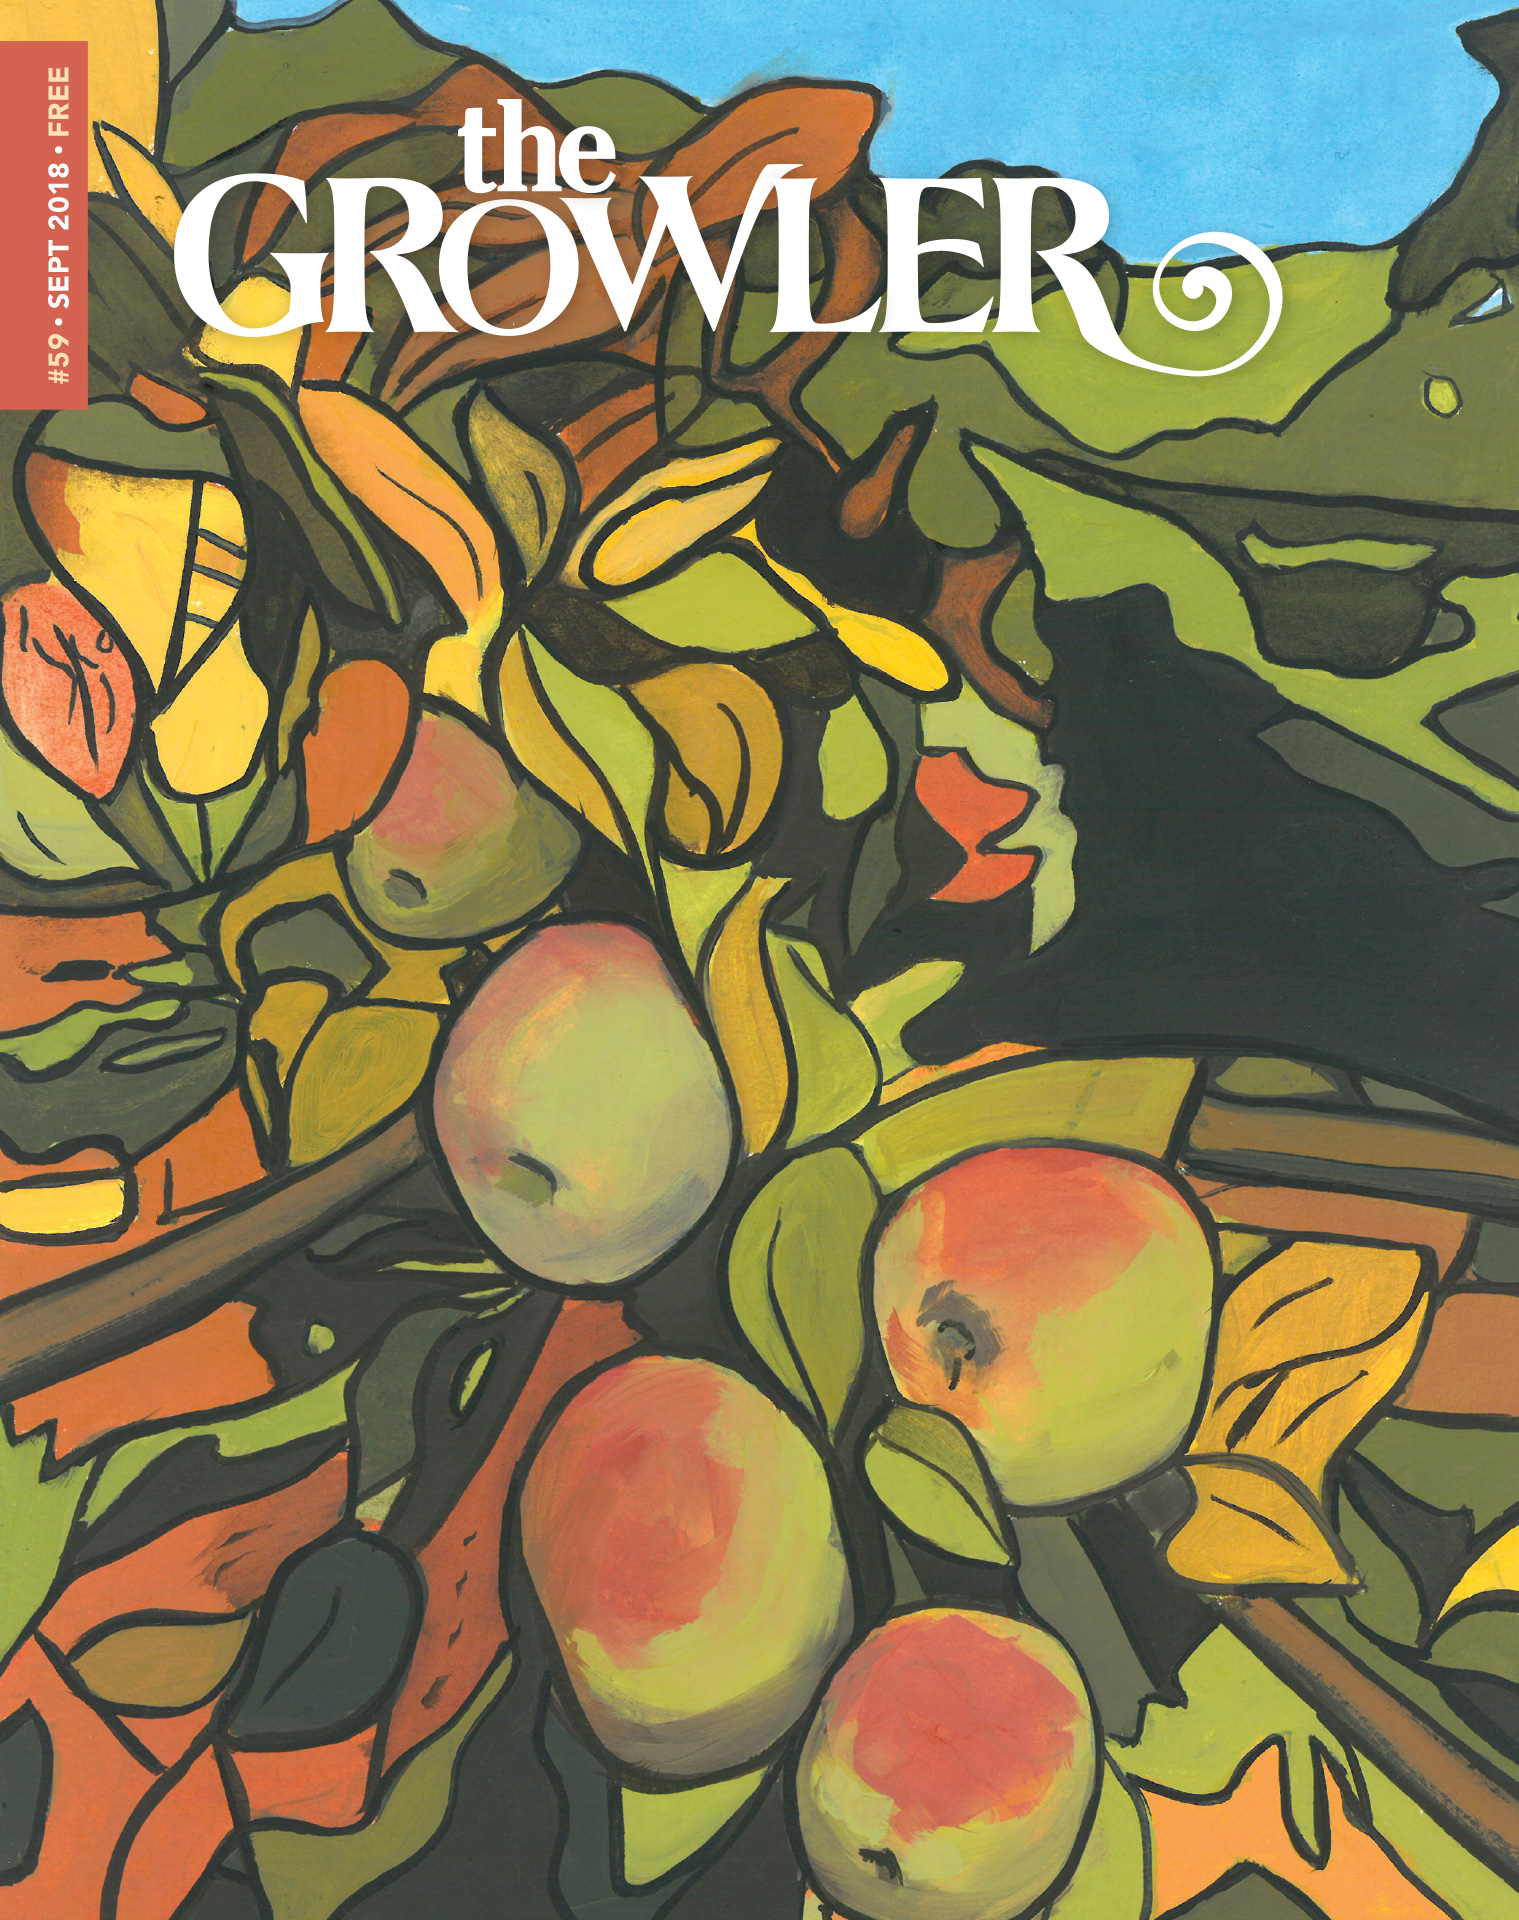 The Growler Issue 59 cover art // Art by Michael Slagle